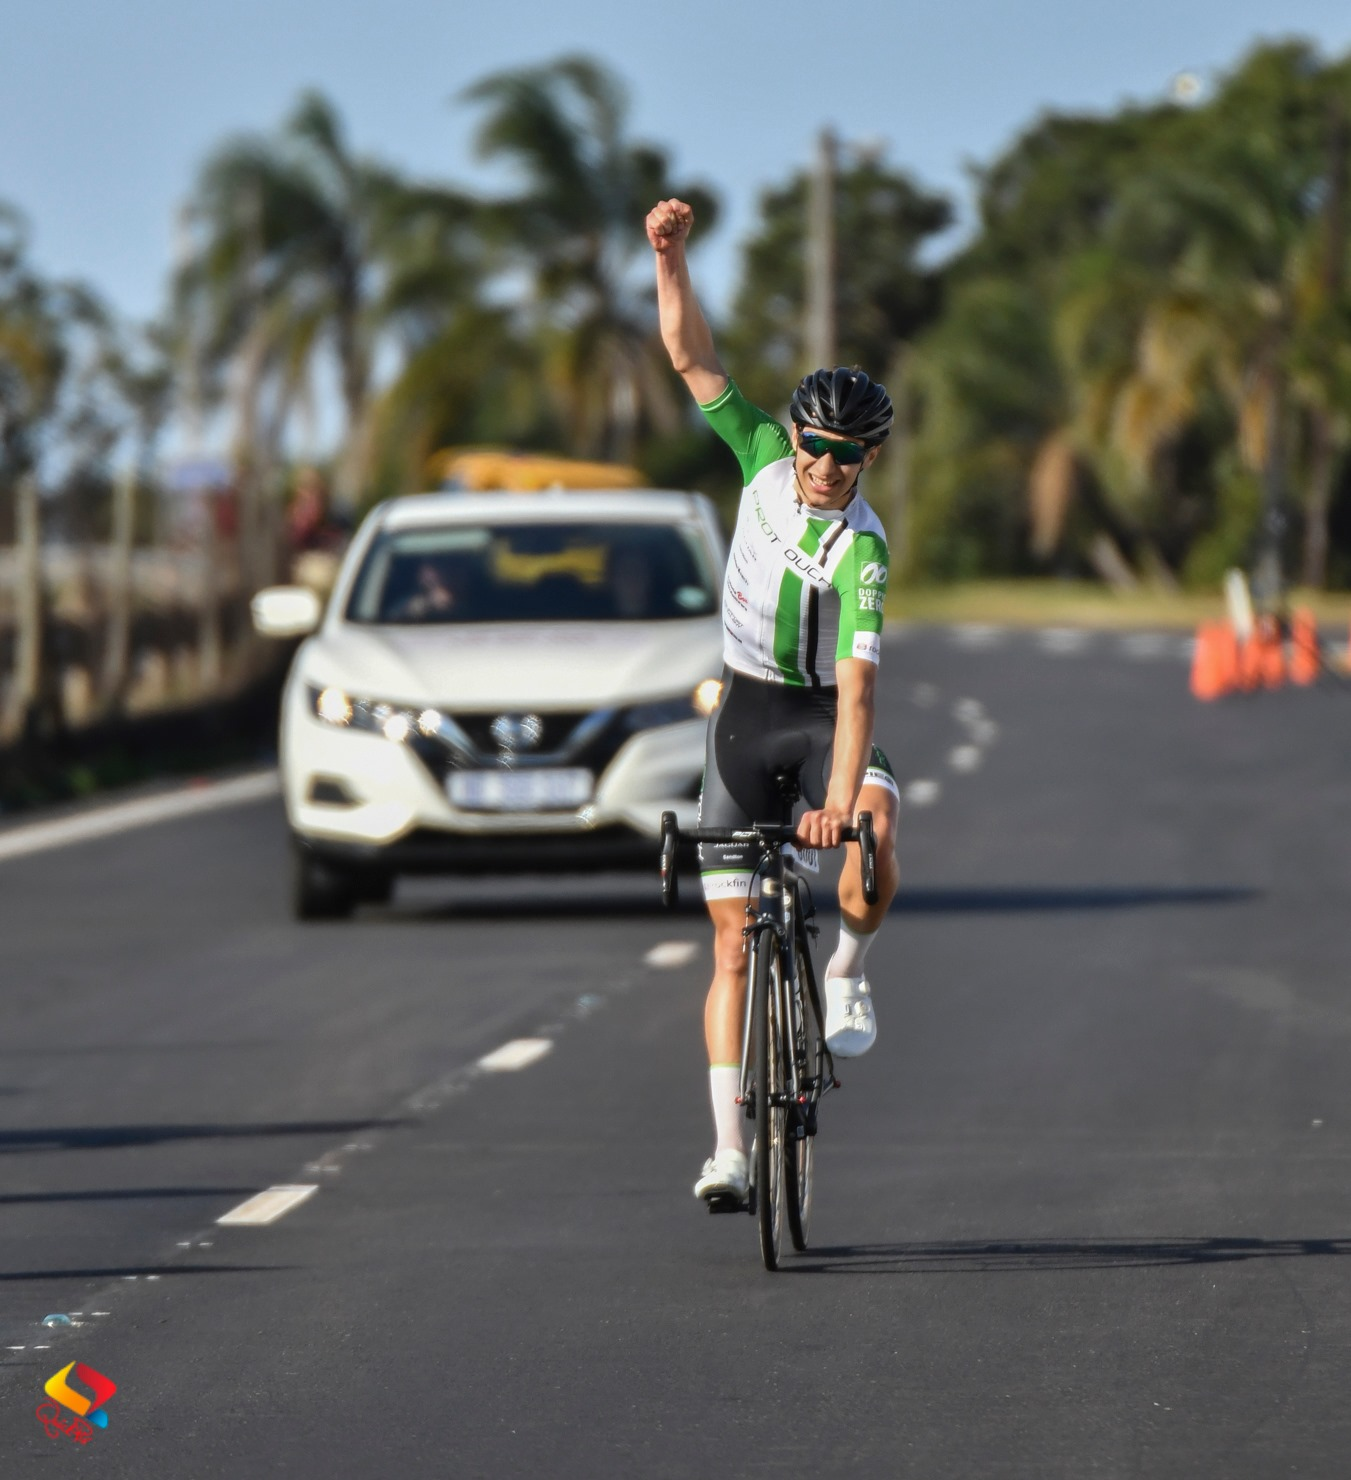 Tiano da Silva won the Men's Junior road race title at the 2019 SA ROAD National Championships for Junior, Youth and younger in Westville on Sunday 23 June 2019.